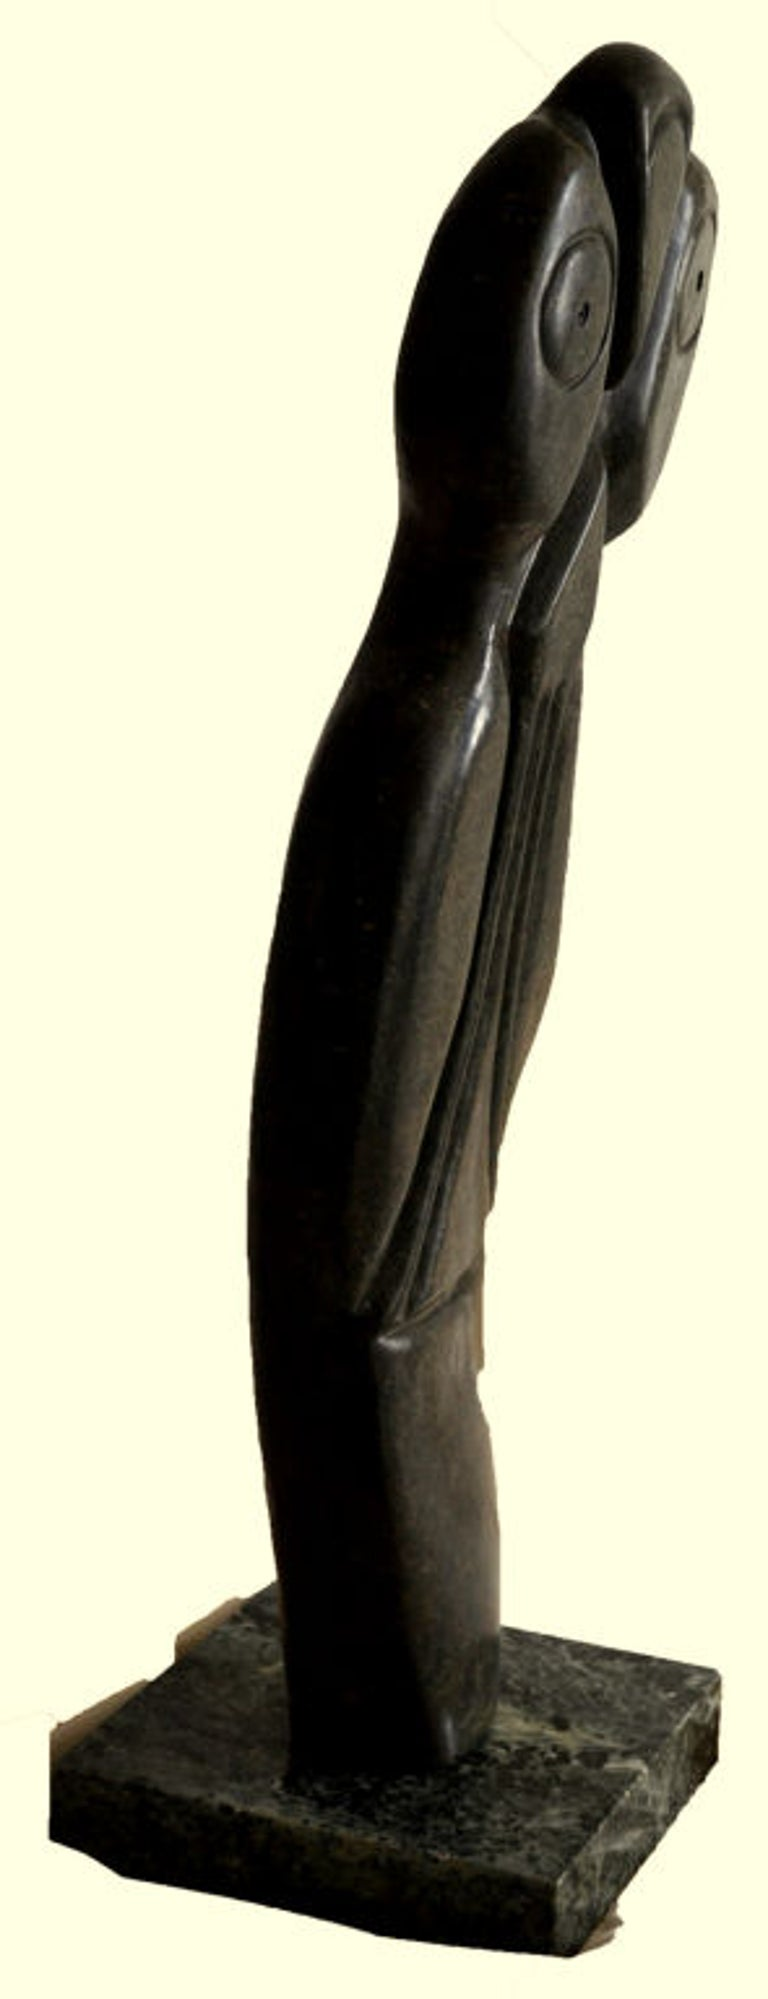 Carved Bauden Khoreay's, carved Stone Sculpture of Owl, Malawi, Africa, circa 1970 For Sale